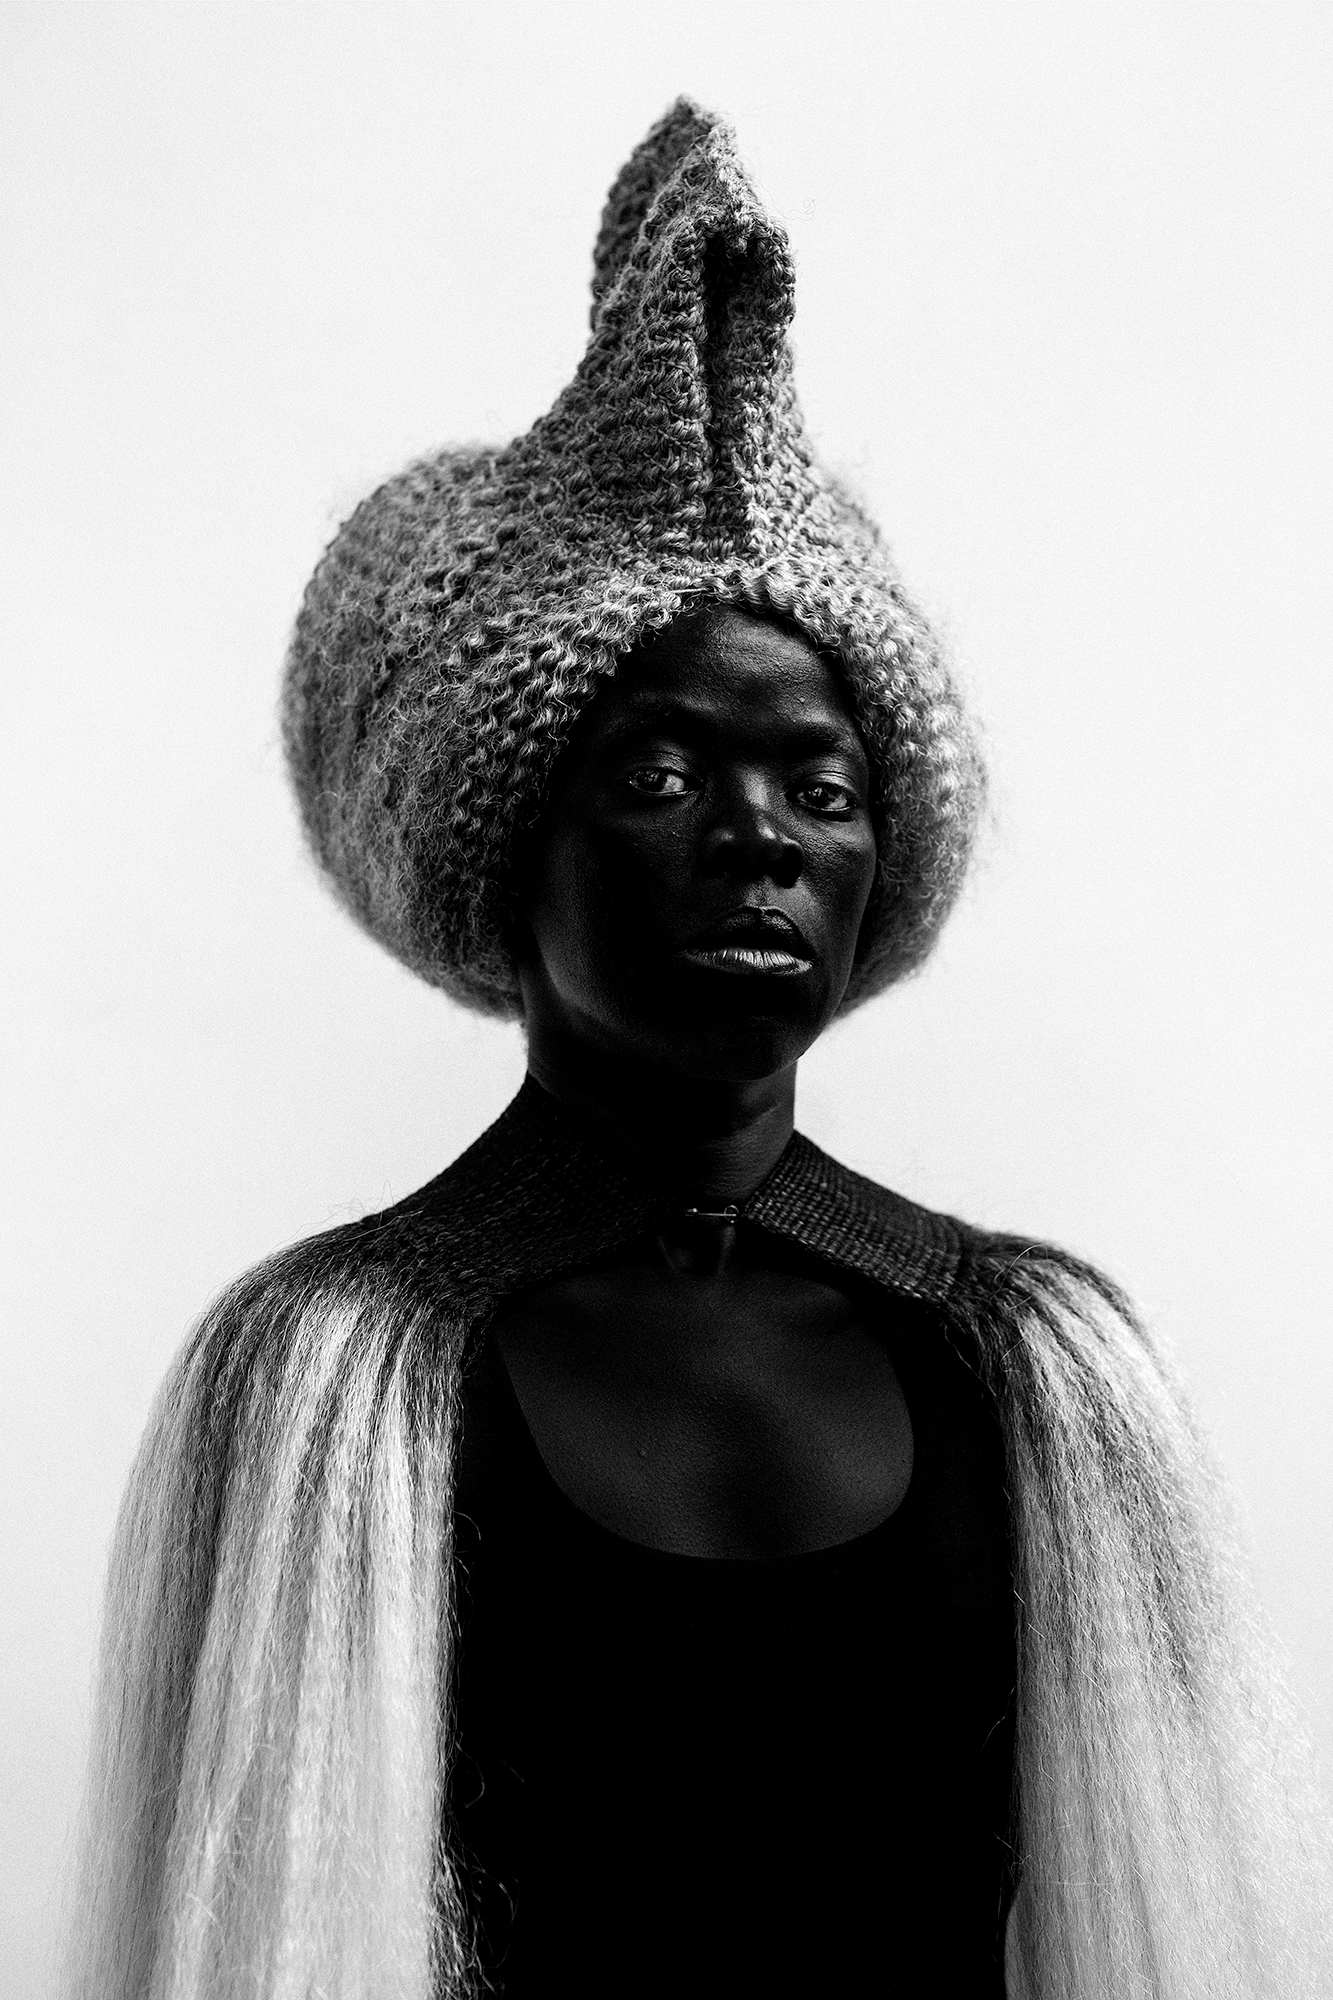 """Kodwa I, Amsterdam"" (2017), © Zanele Muholi, courtesy of Stevenson Gallery, Cape Town/Johannesburg, and Yancey Richardson Gallery, New York"